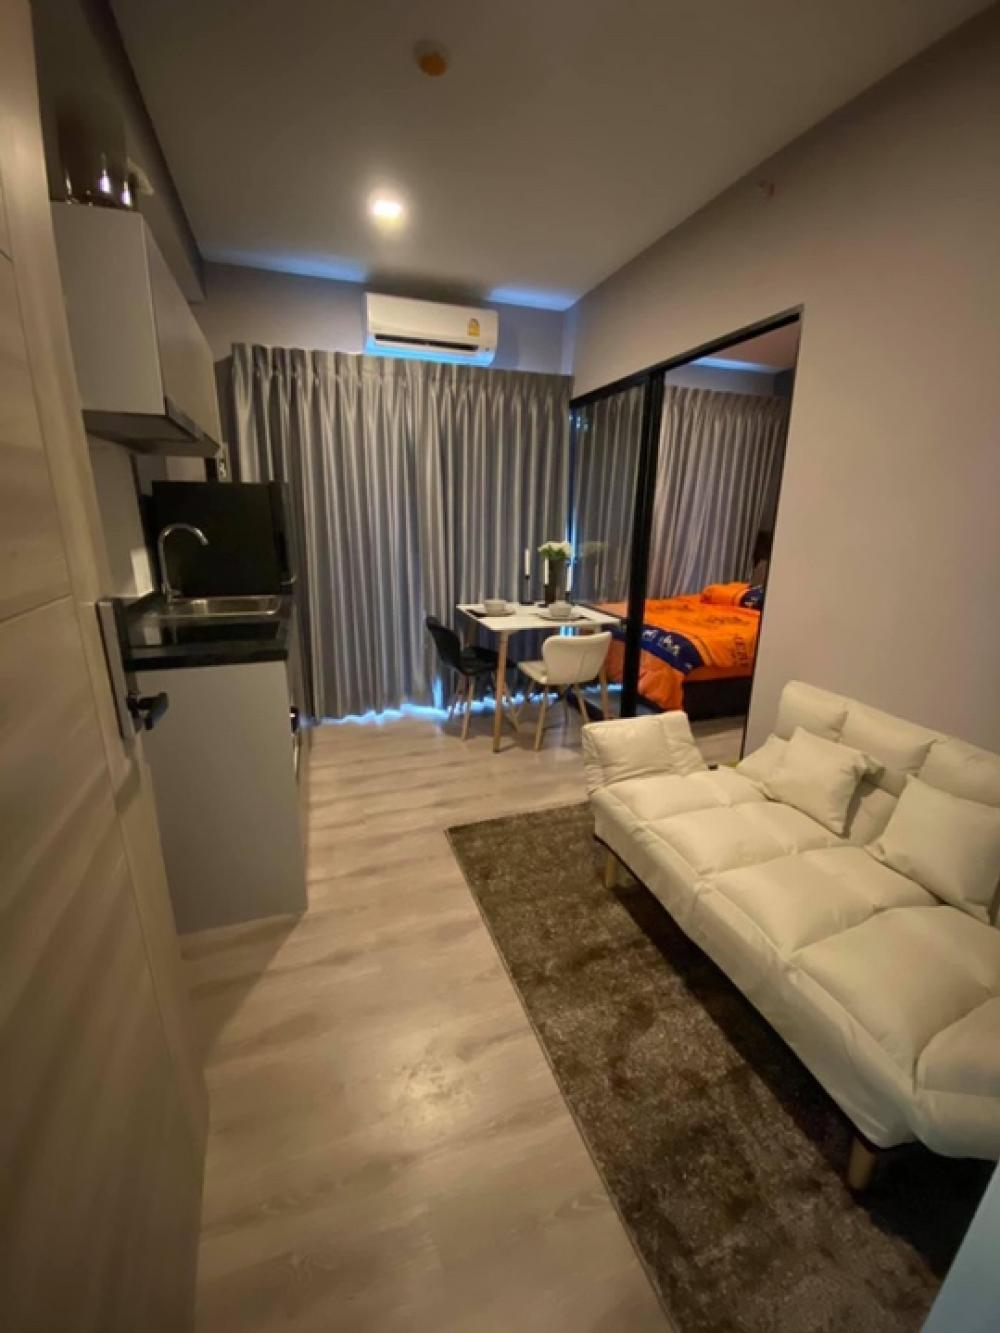 For RentCondoSamrong, Samut Prakan : Condo for rent in Kensington Sukhumvit, Thepharak, beautifully decorated Partially divide the room, ready to move in.